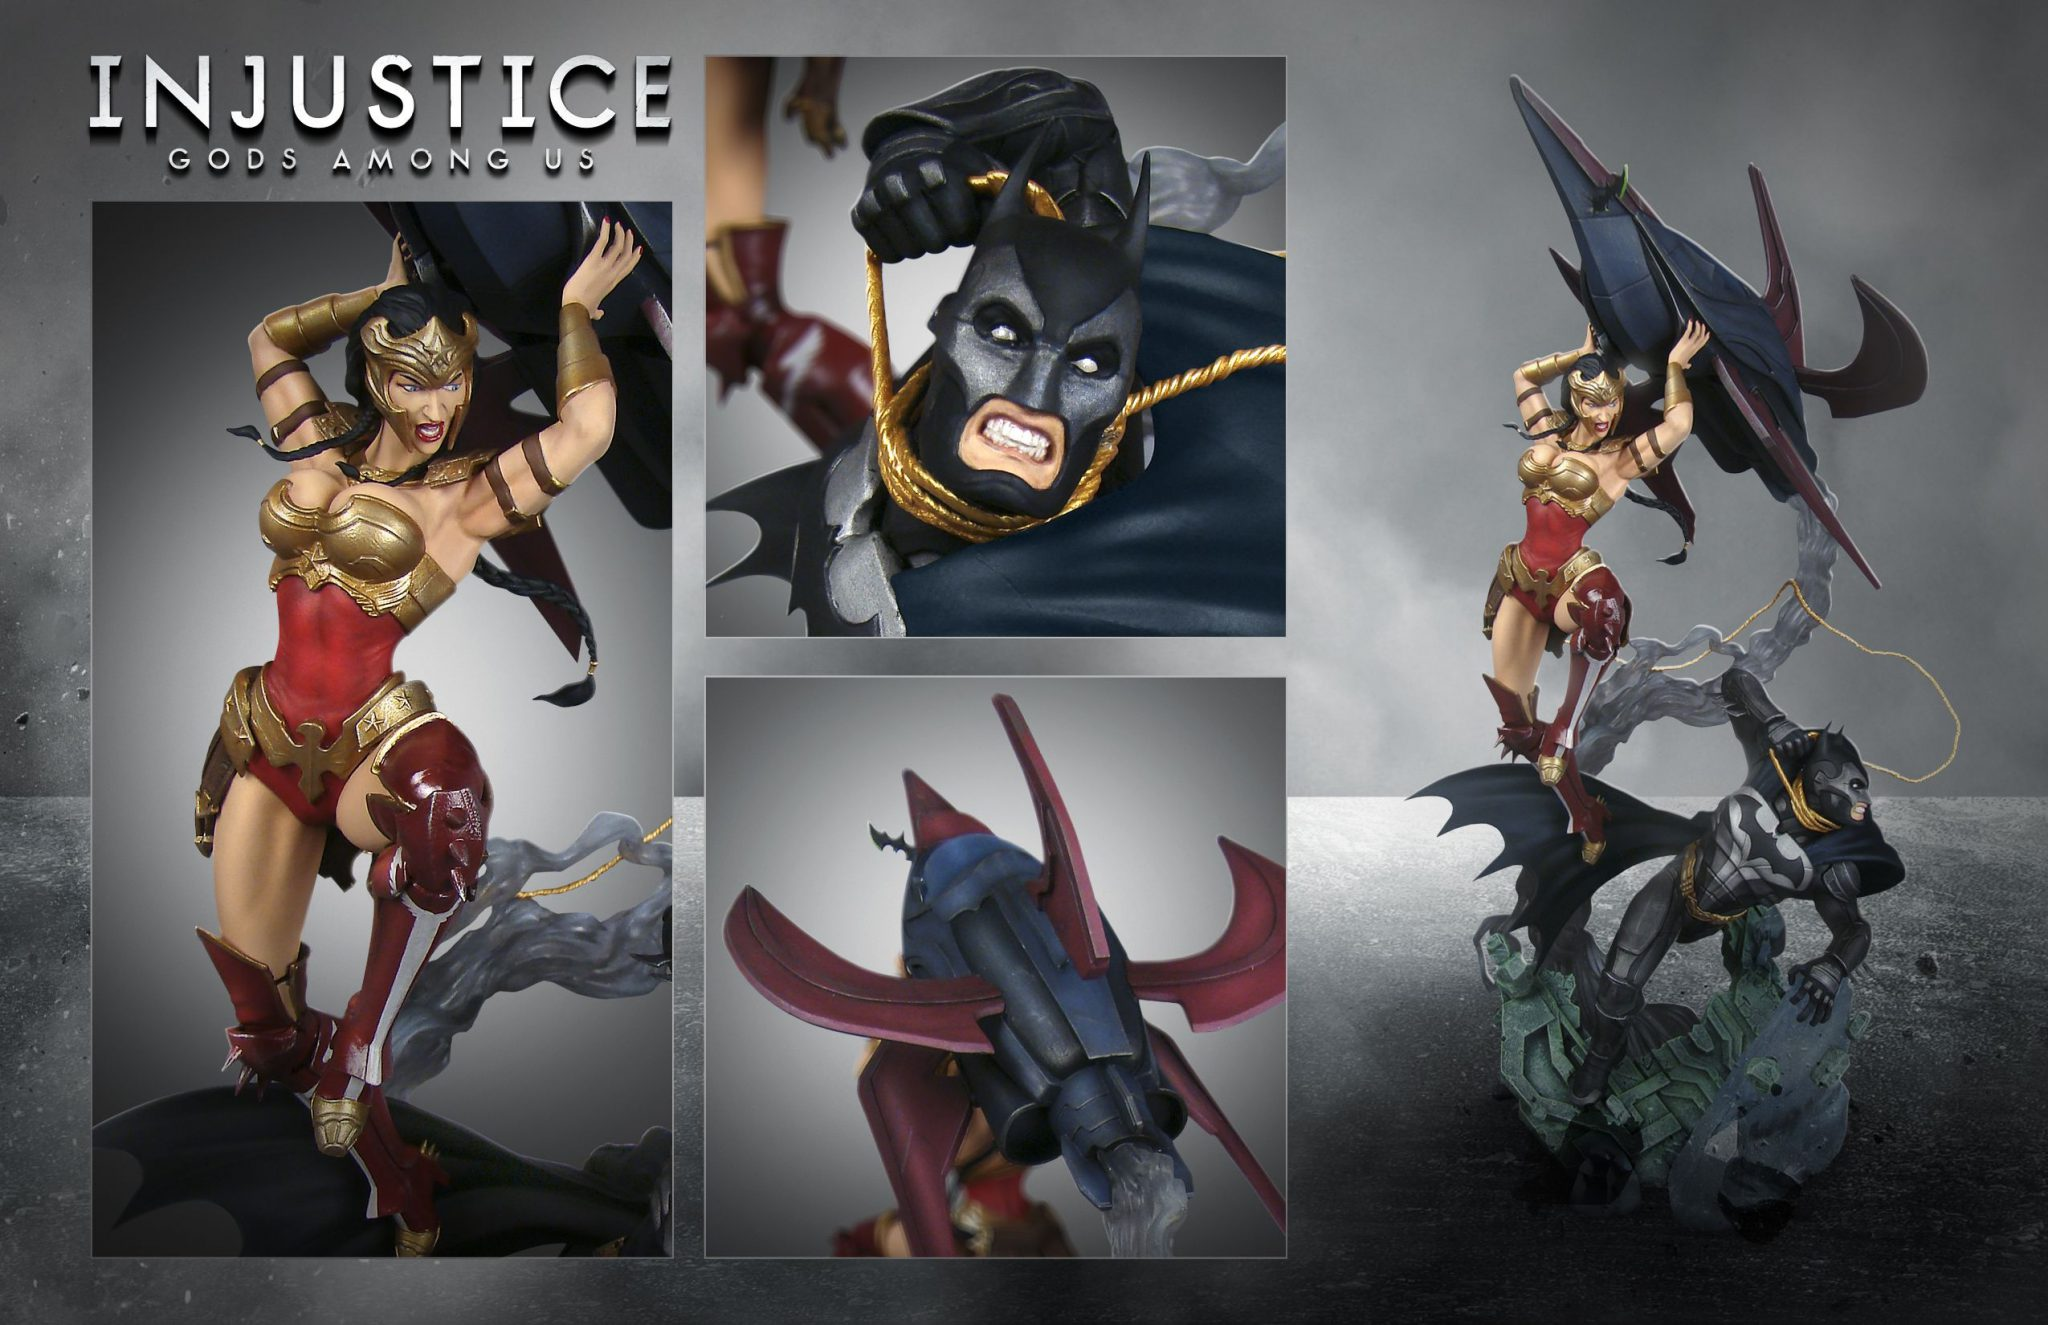 Injustice gods among us collectors edition revealed gamingshogun injustice gods among us collectors edition revealed voltagebd